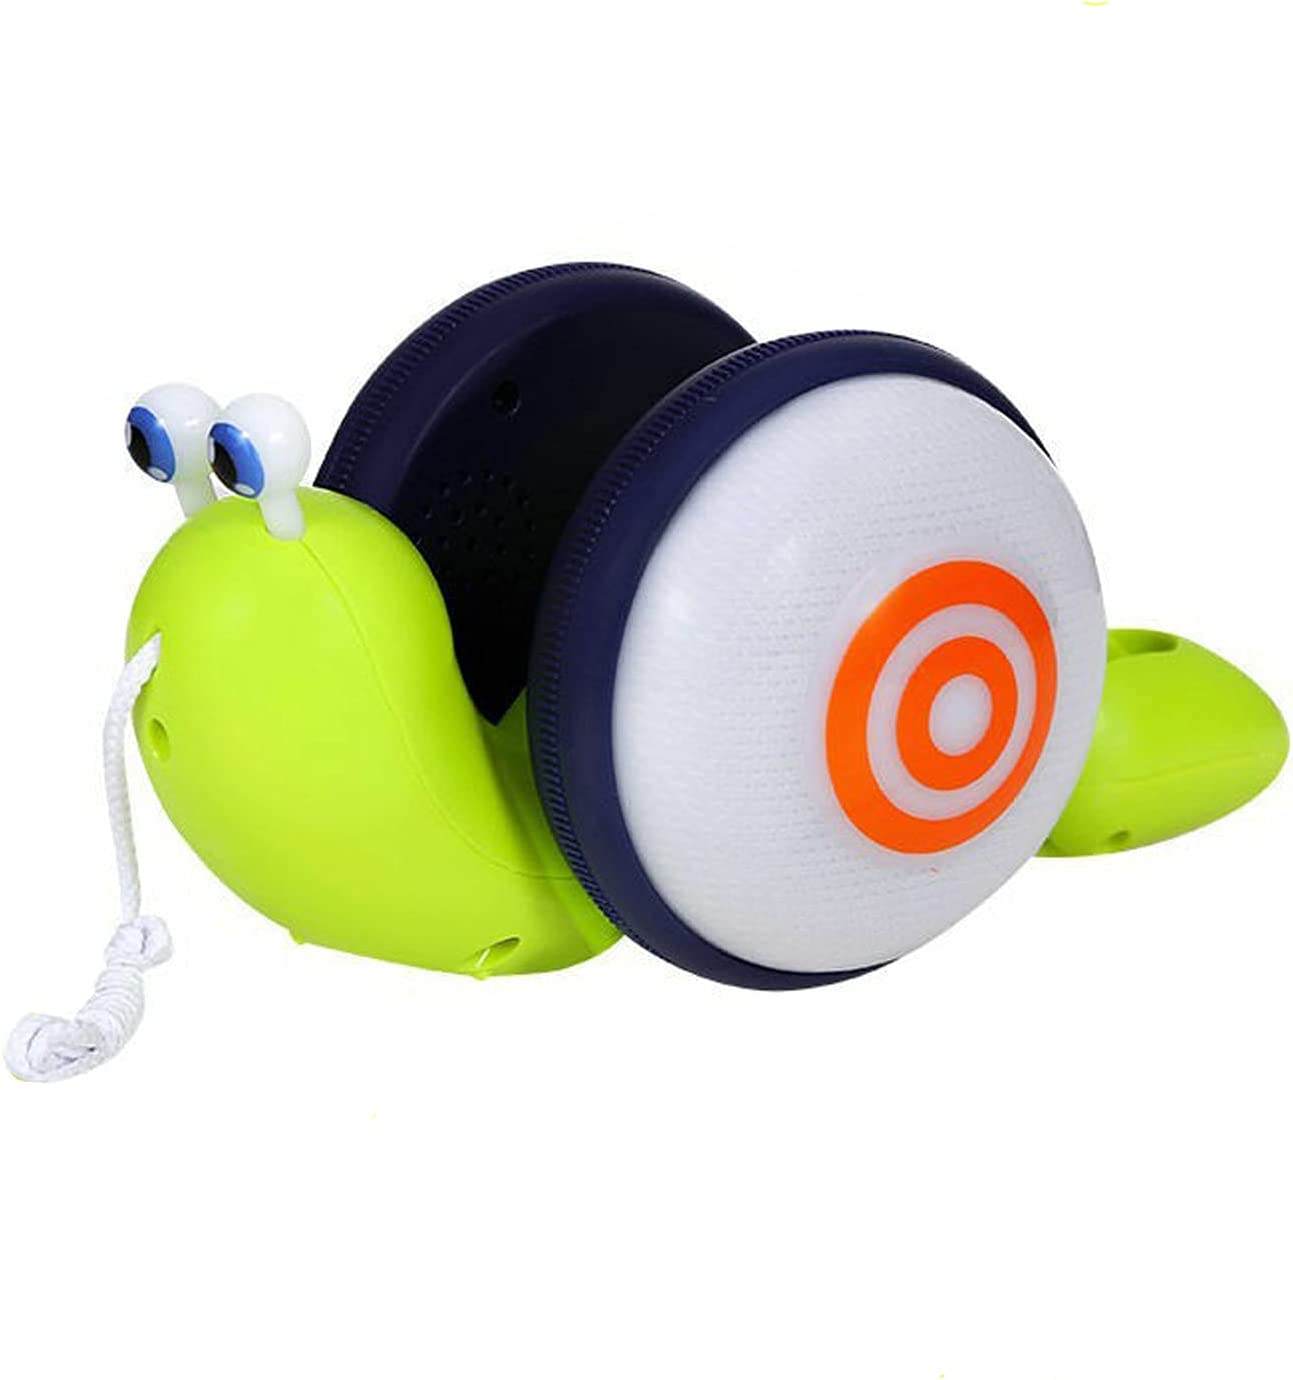 Leash Snail Toy Creative Luminous can Funny Electric Large ...